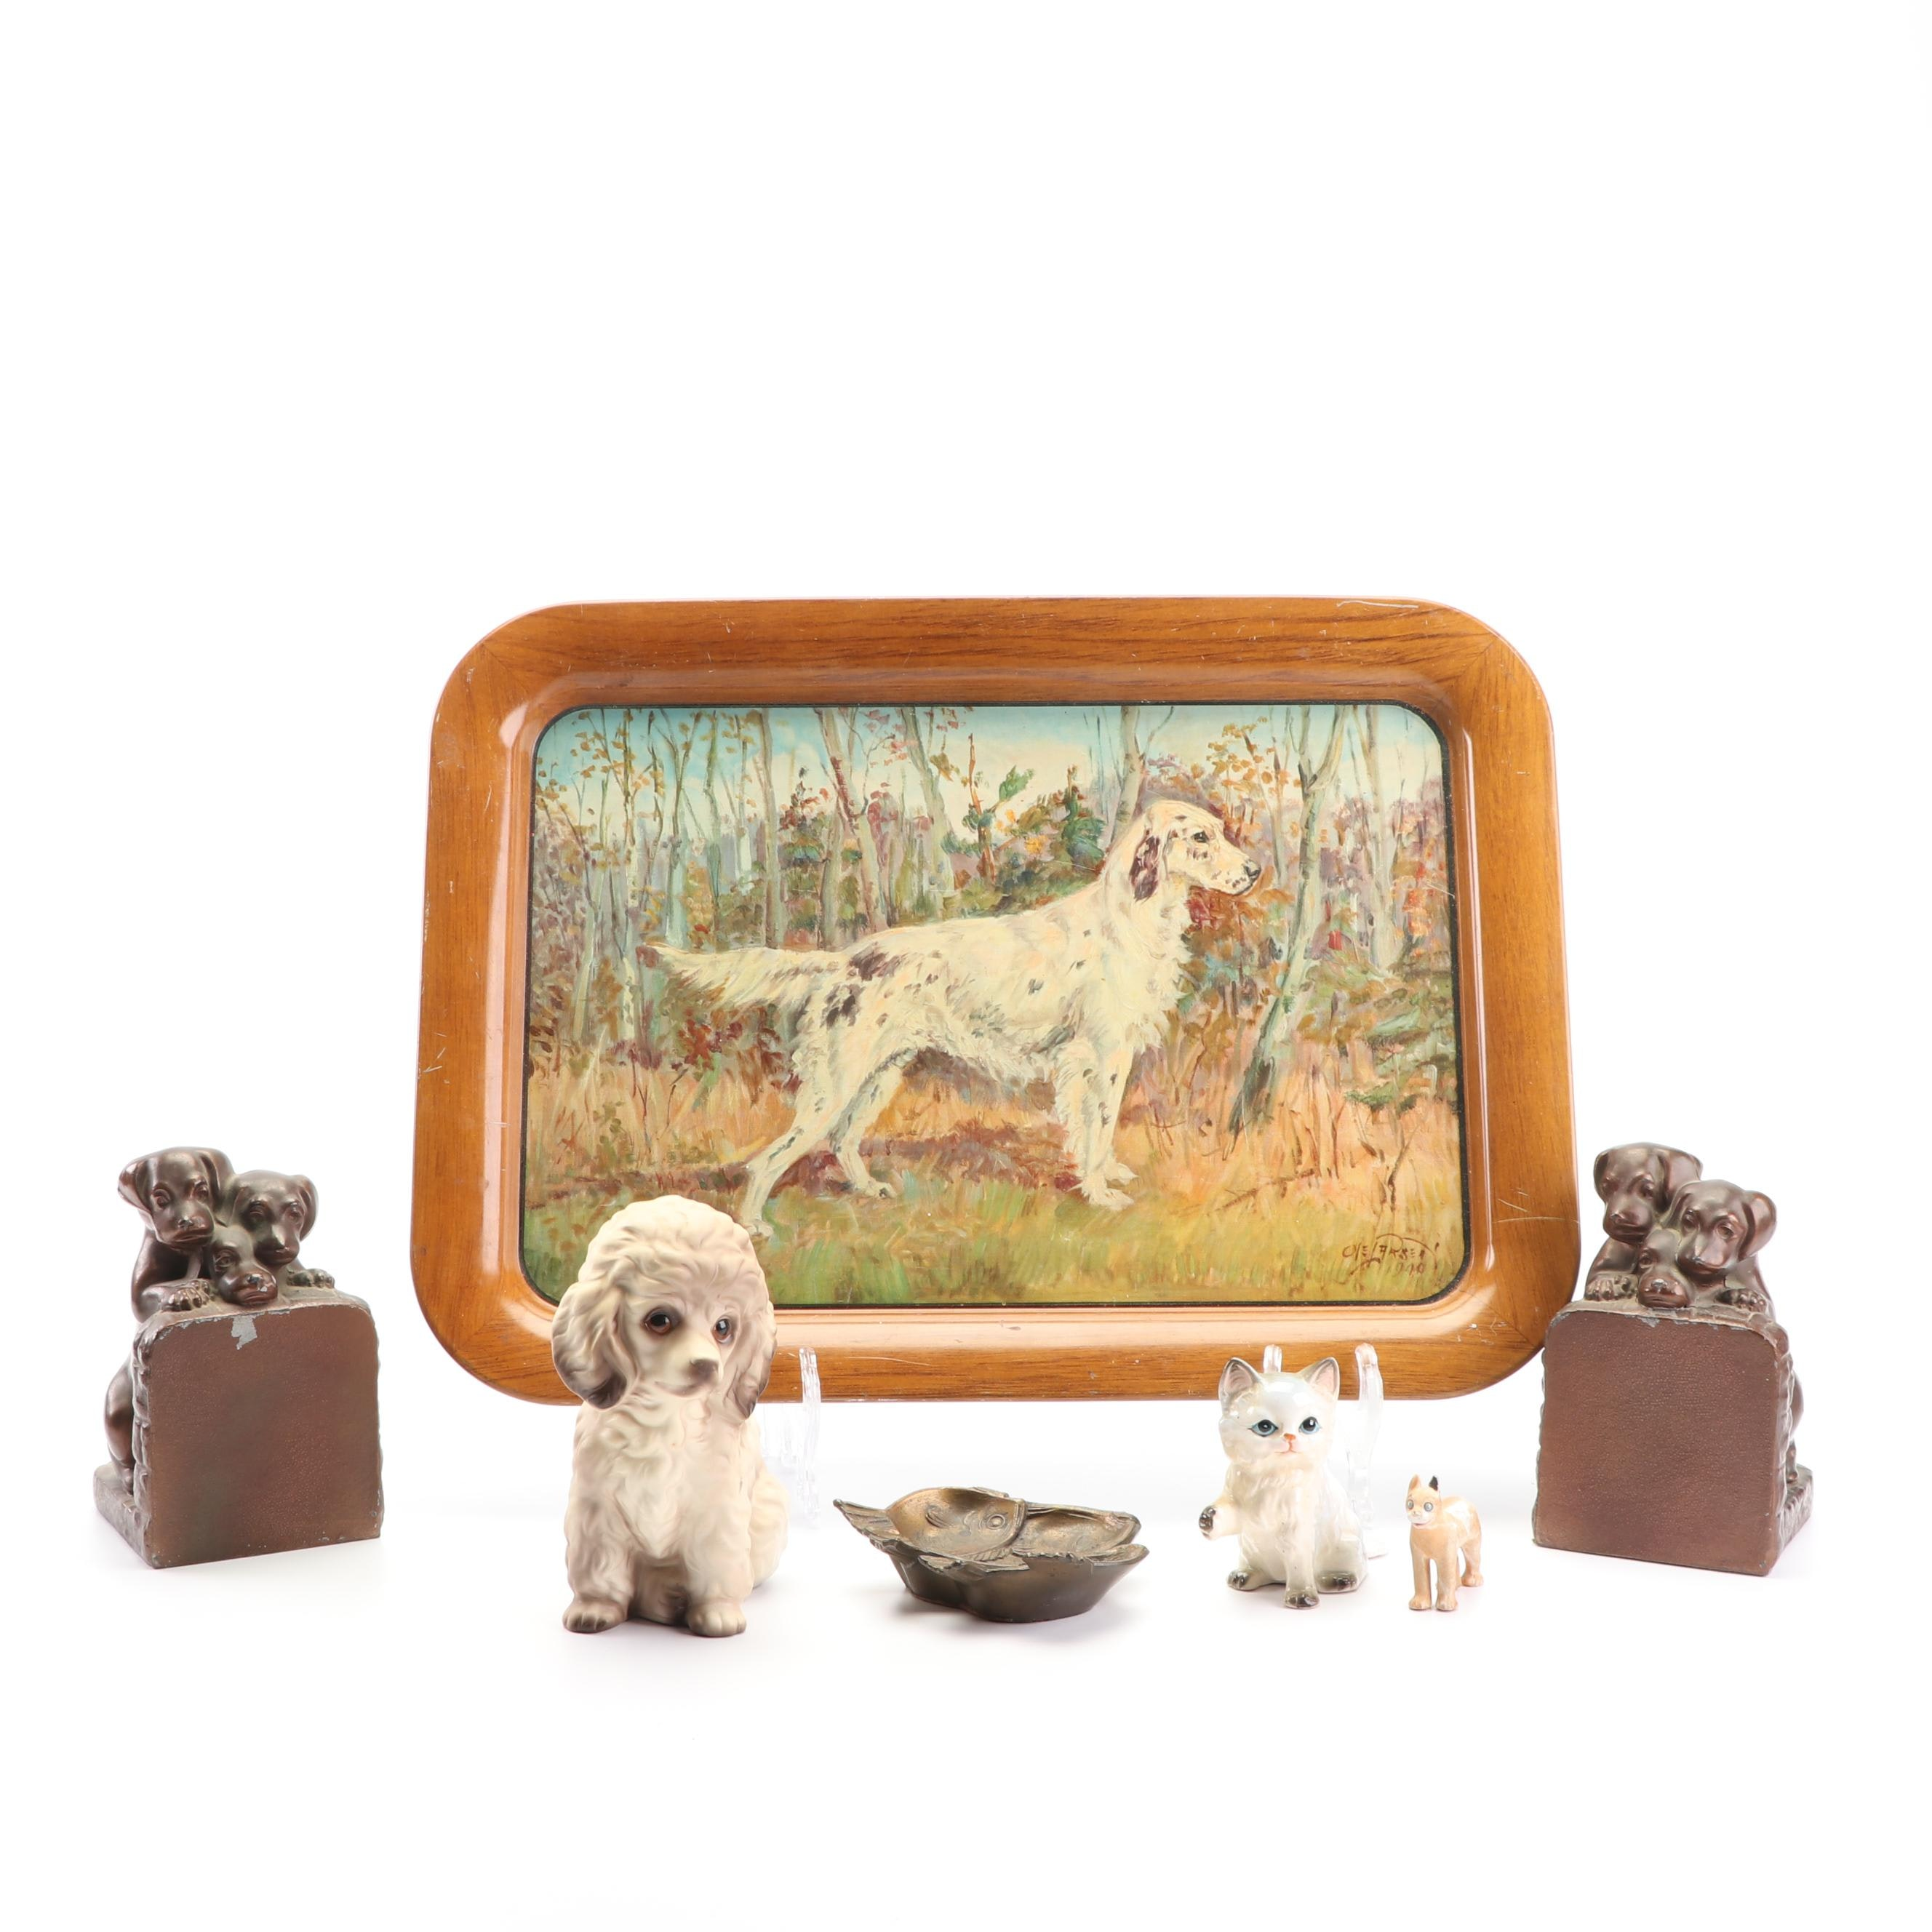 Animal Figurines, Themed Trays and Bookends